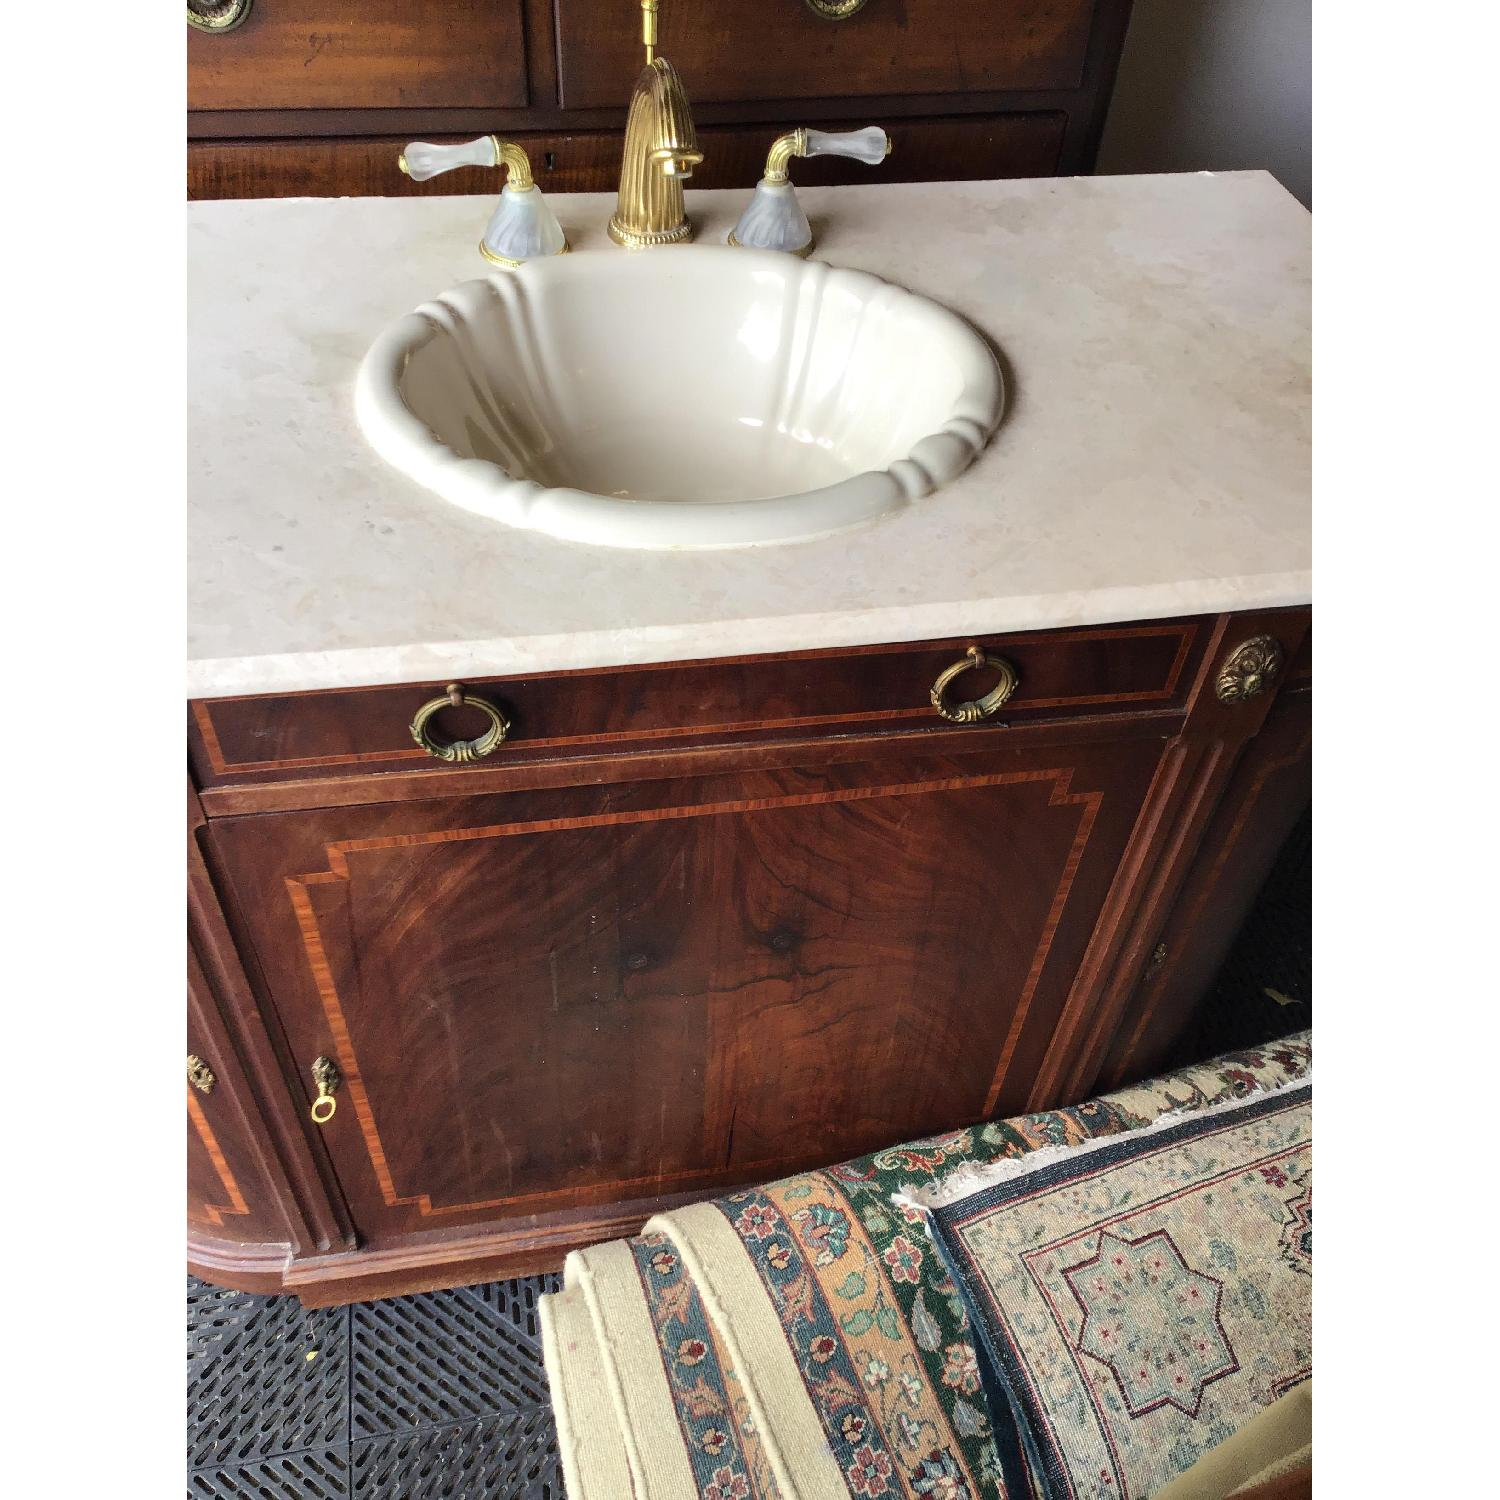 Phylrich Faucet Sink Mahogany Vanity-1